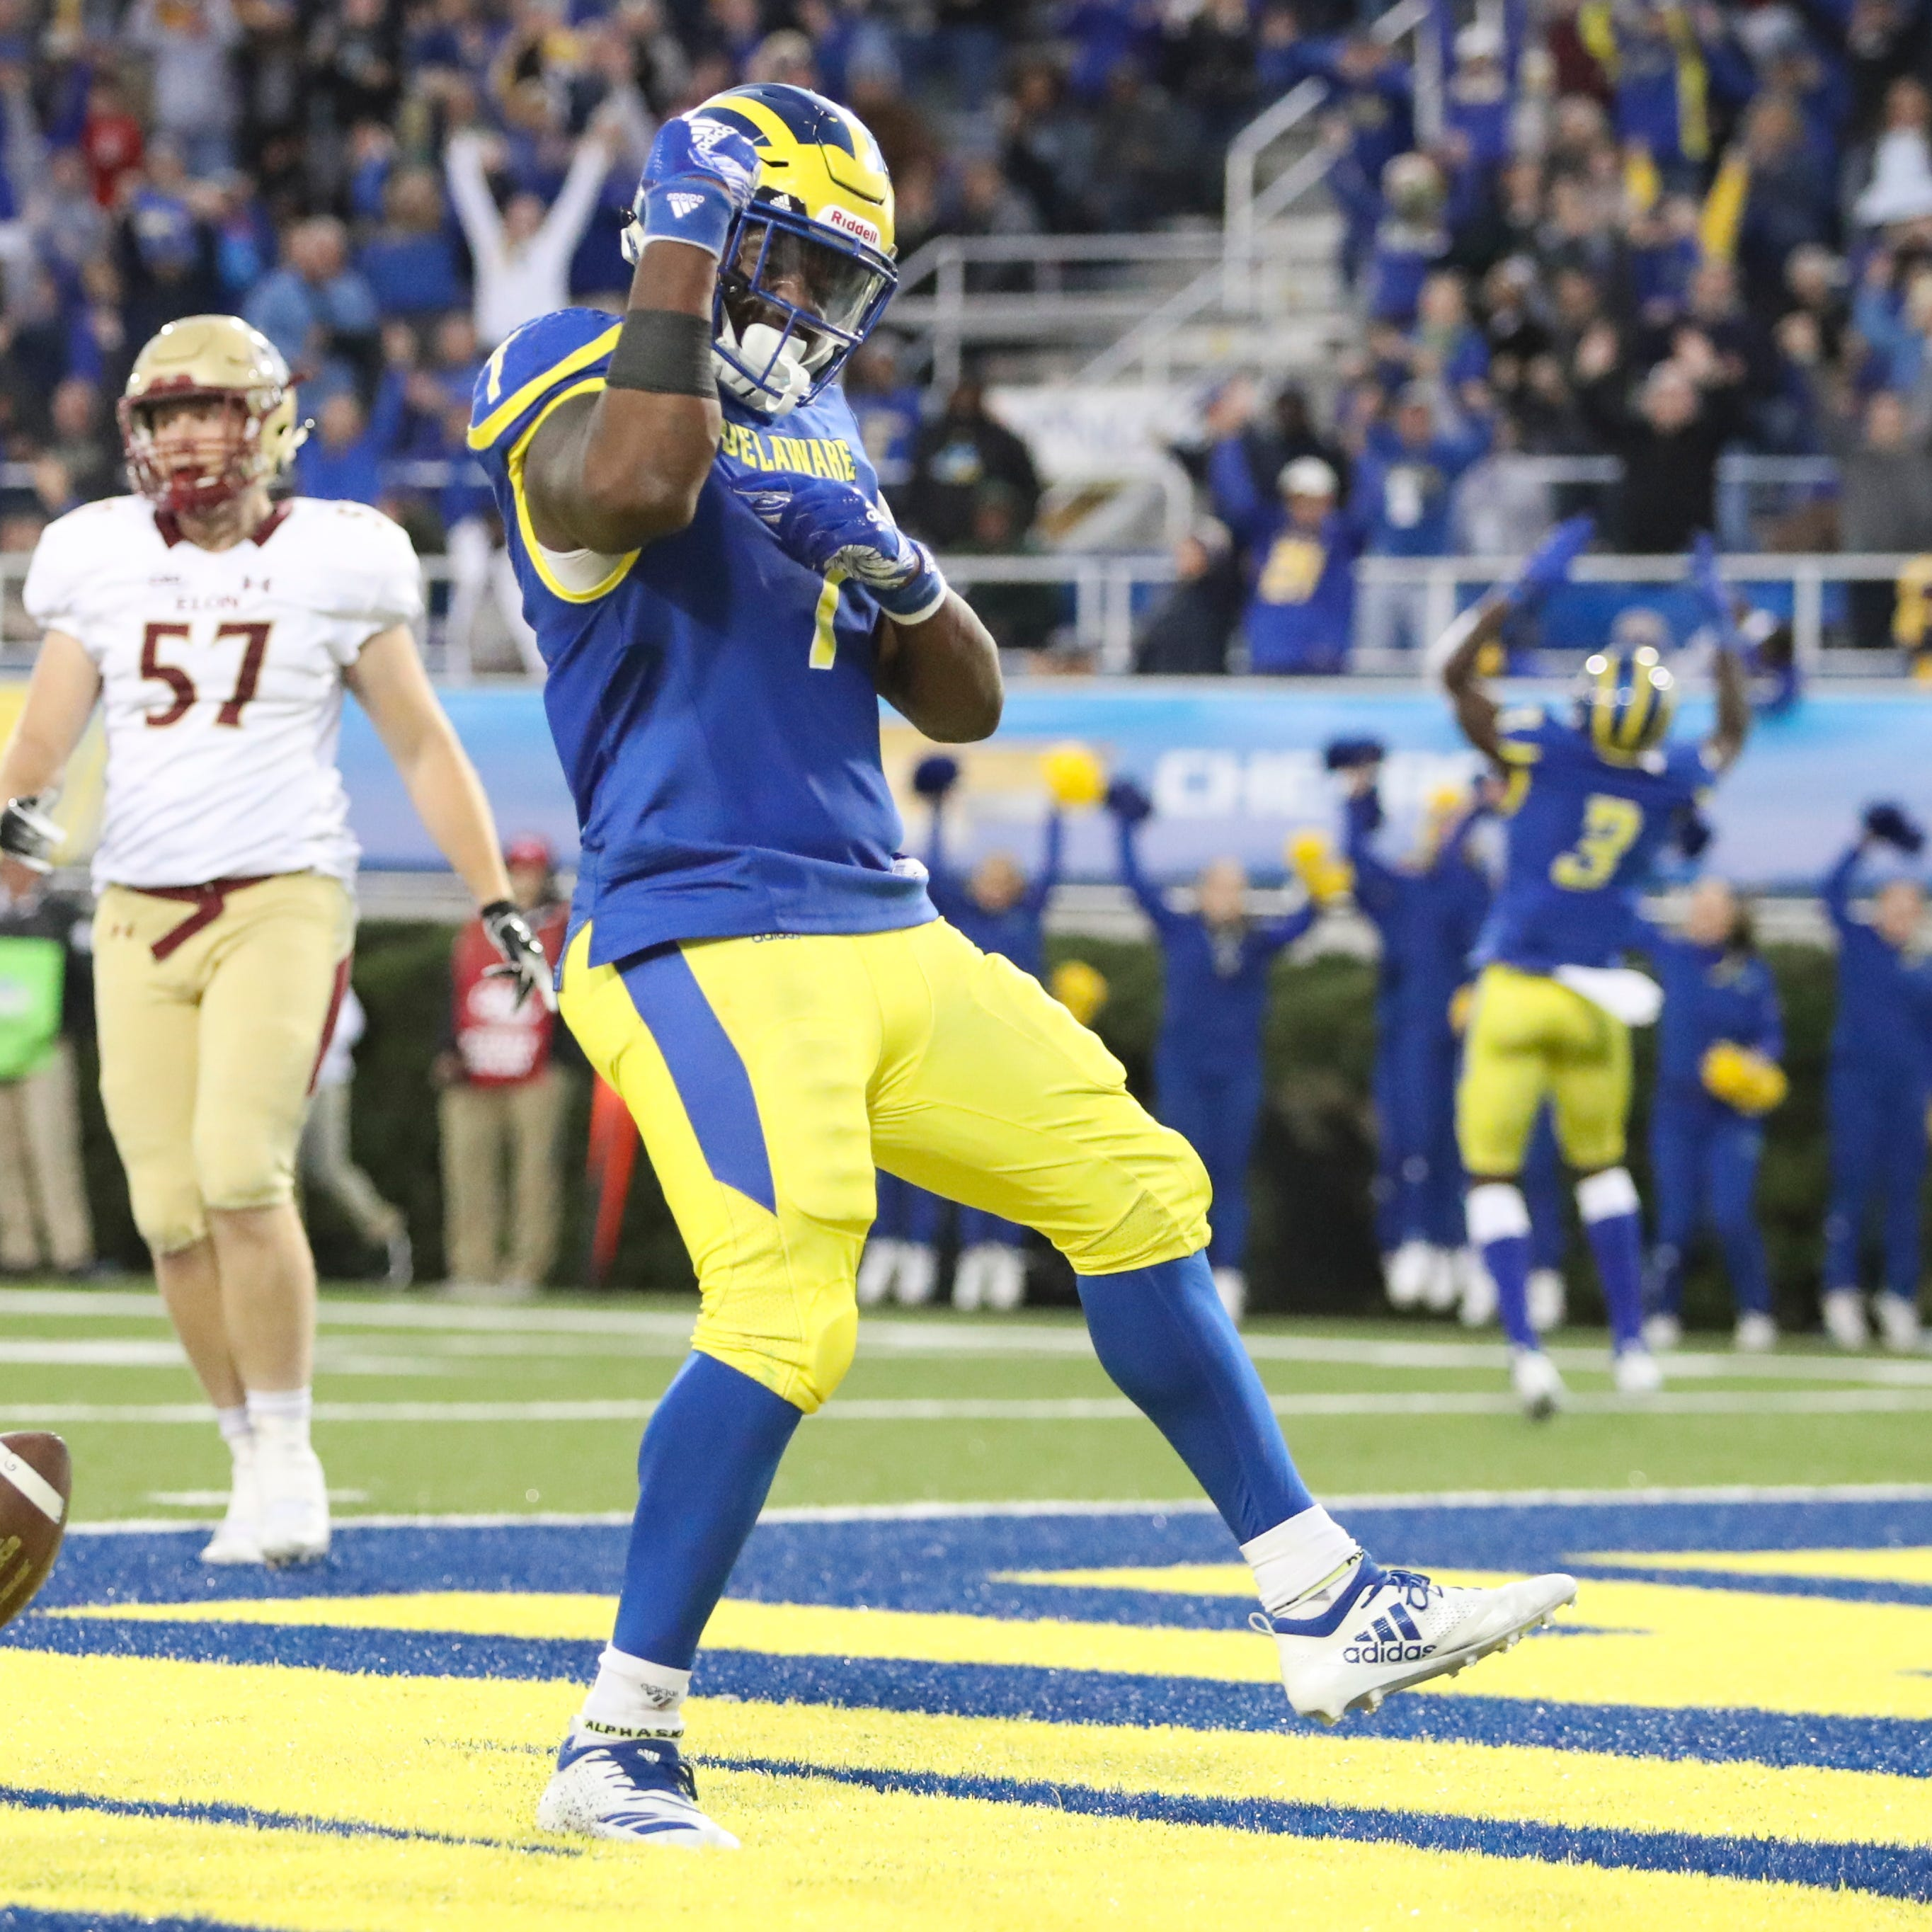 University of Delaware returns to FCS Top 25 after win over Elon